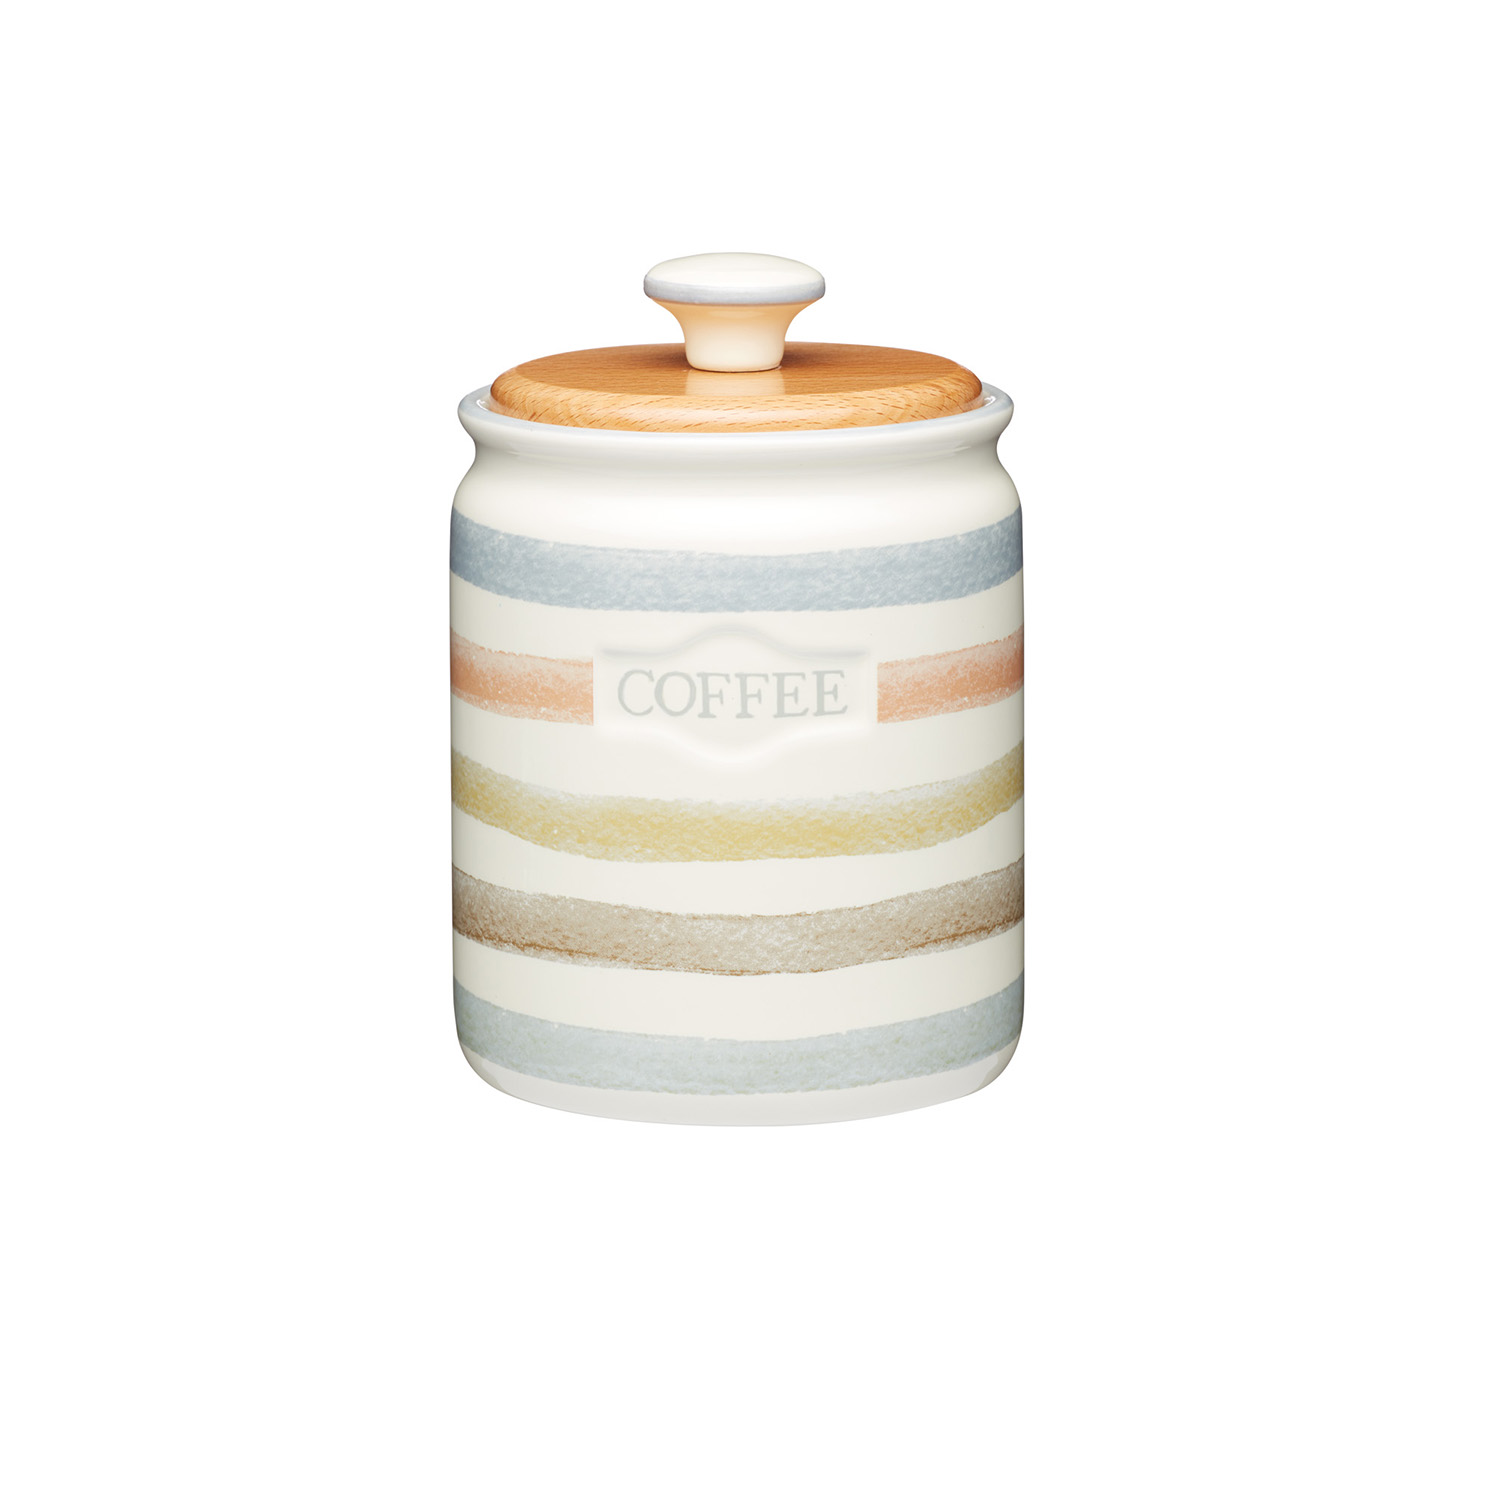 Image of Classic Coffee Canister 800ml, Cream